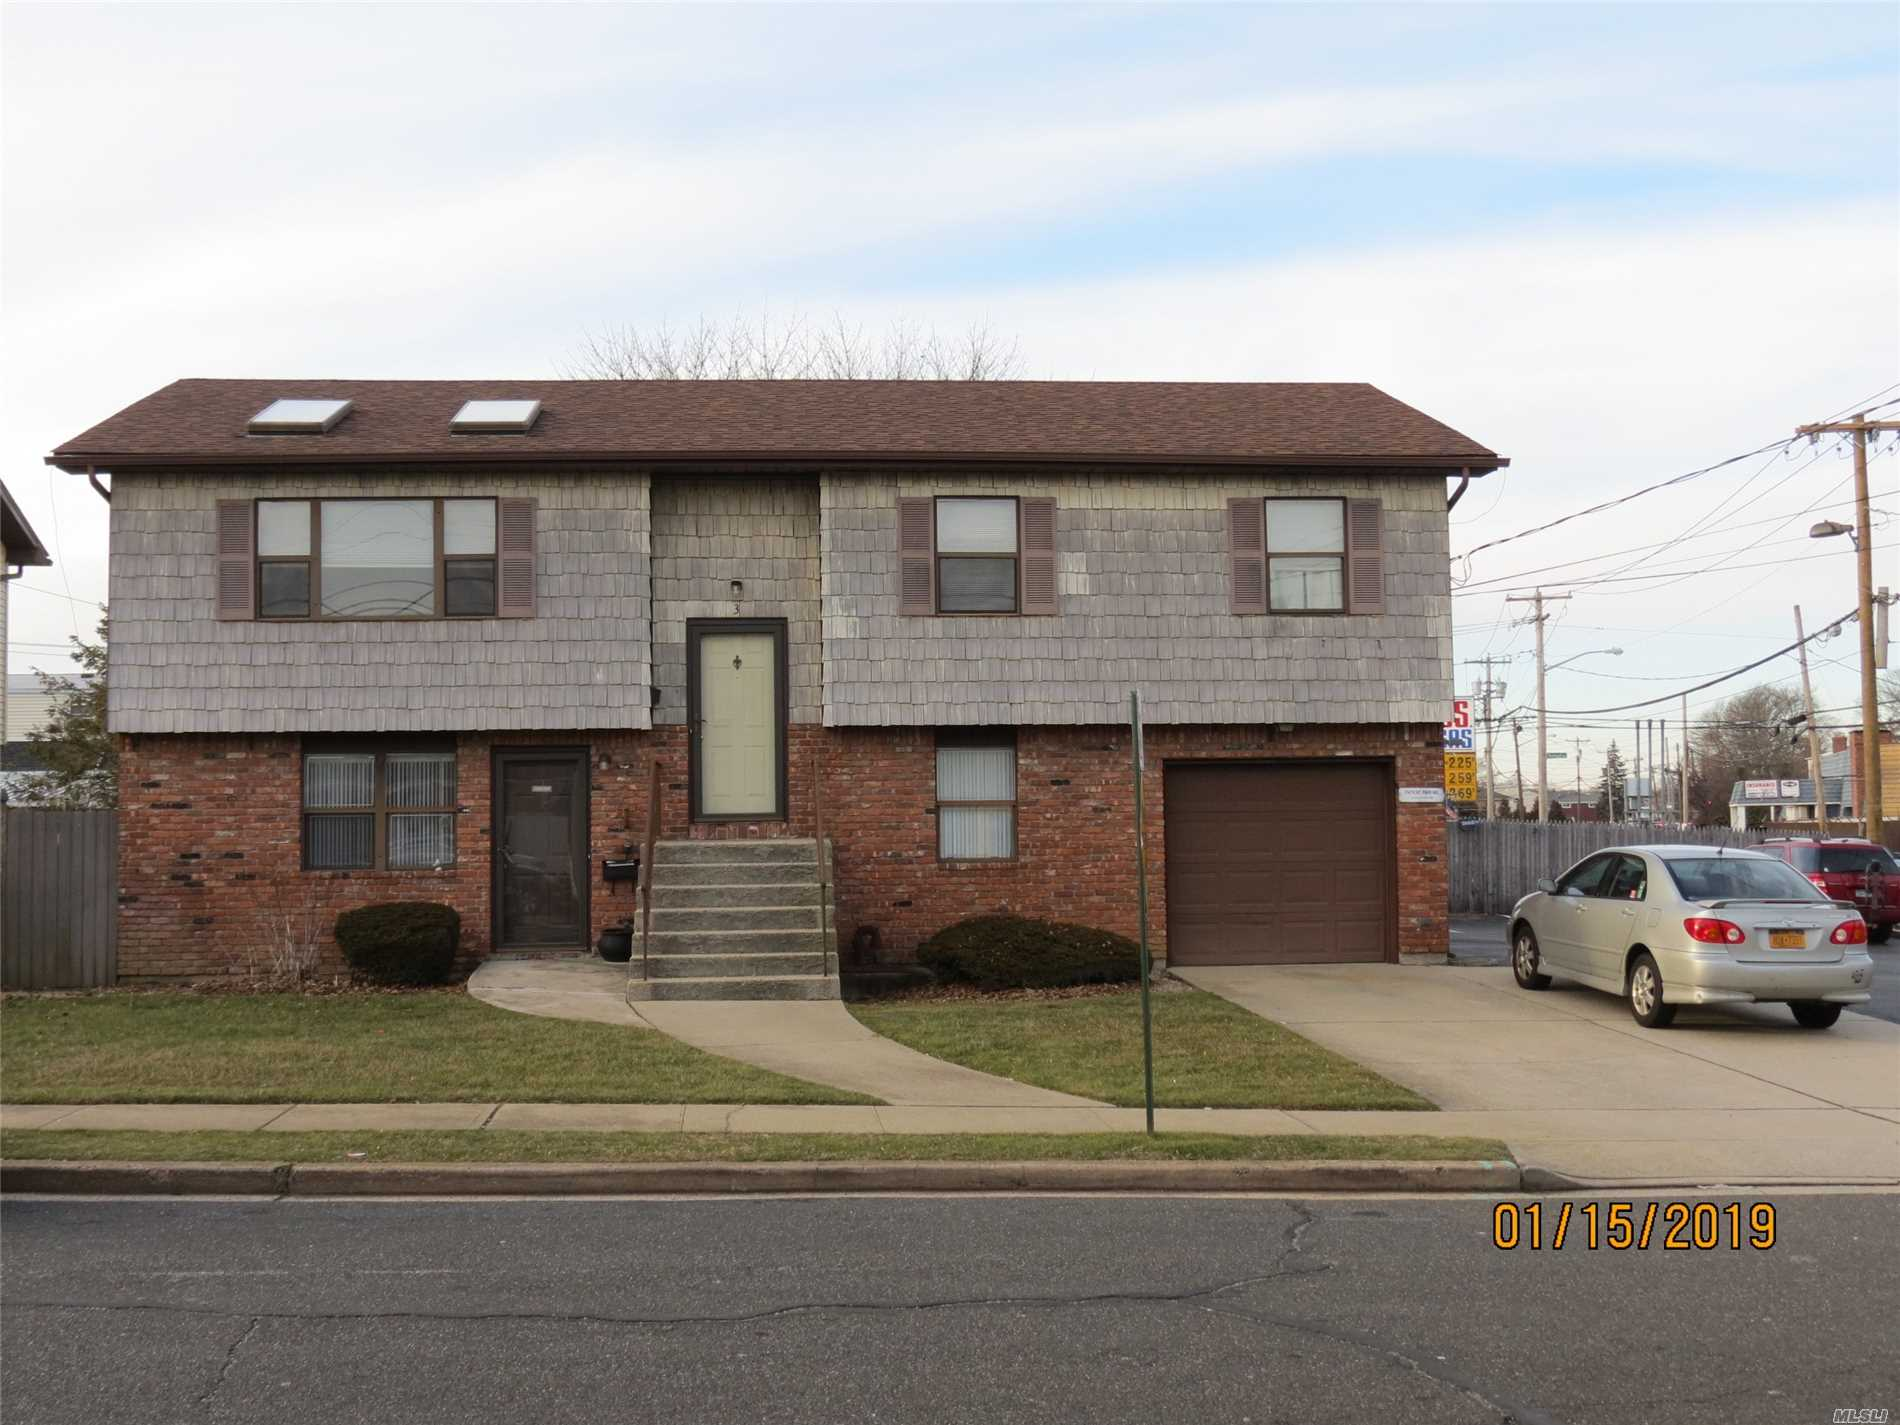 Opportunity Knocks With This Hi-Ranch. Great Location With Professional Office On Ground Level And Ample Parking. Full 3 Bedroom Apartment On Upper Level. Or Make It Your Own Dwelling! Permits Not Transferable. New Owner Must Re-Apply For Proper Permits.